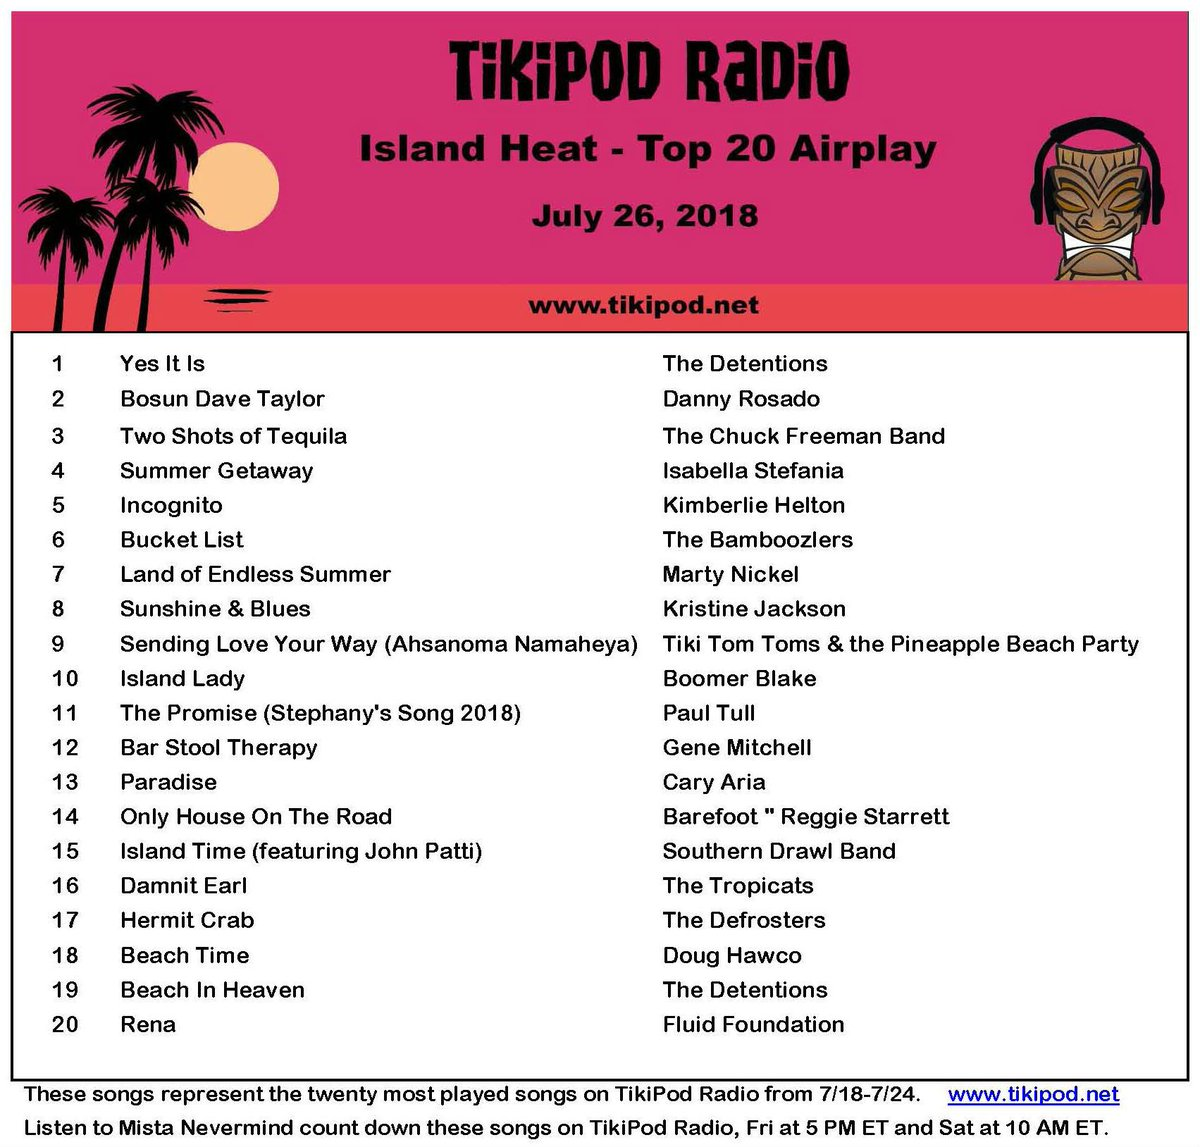 TikiPod Radio on Twitter: